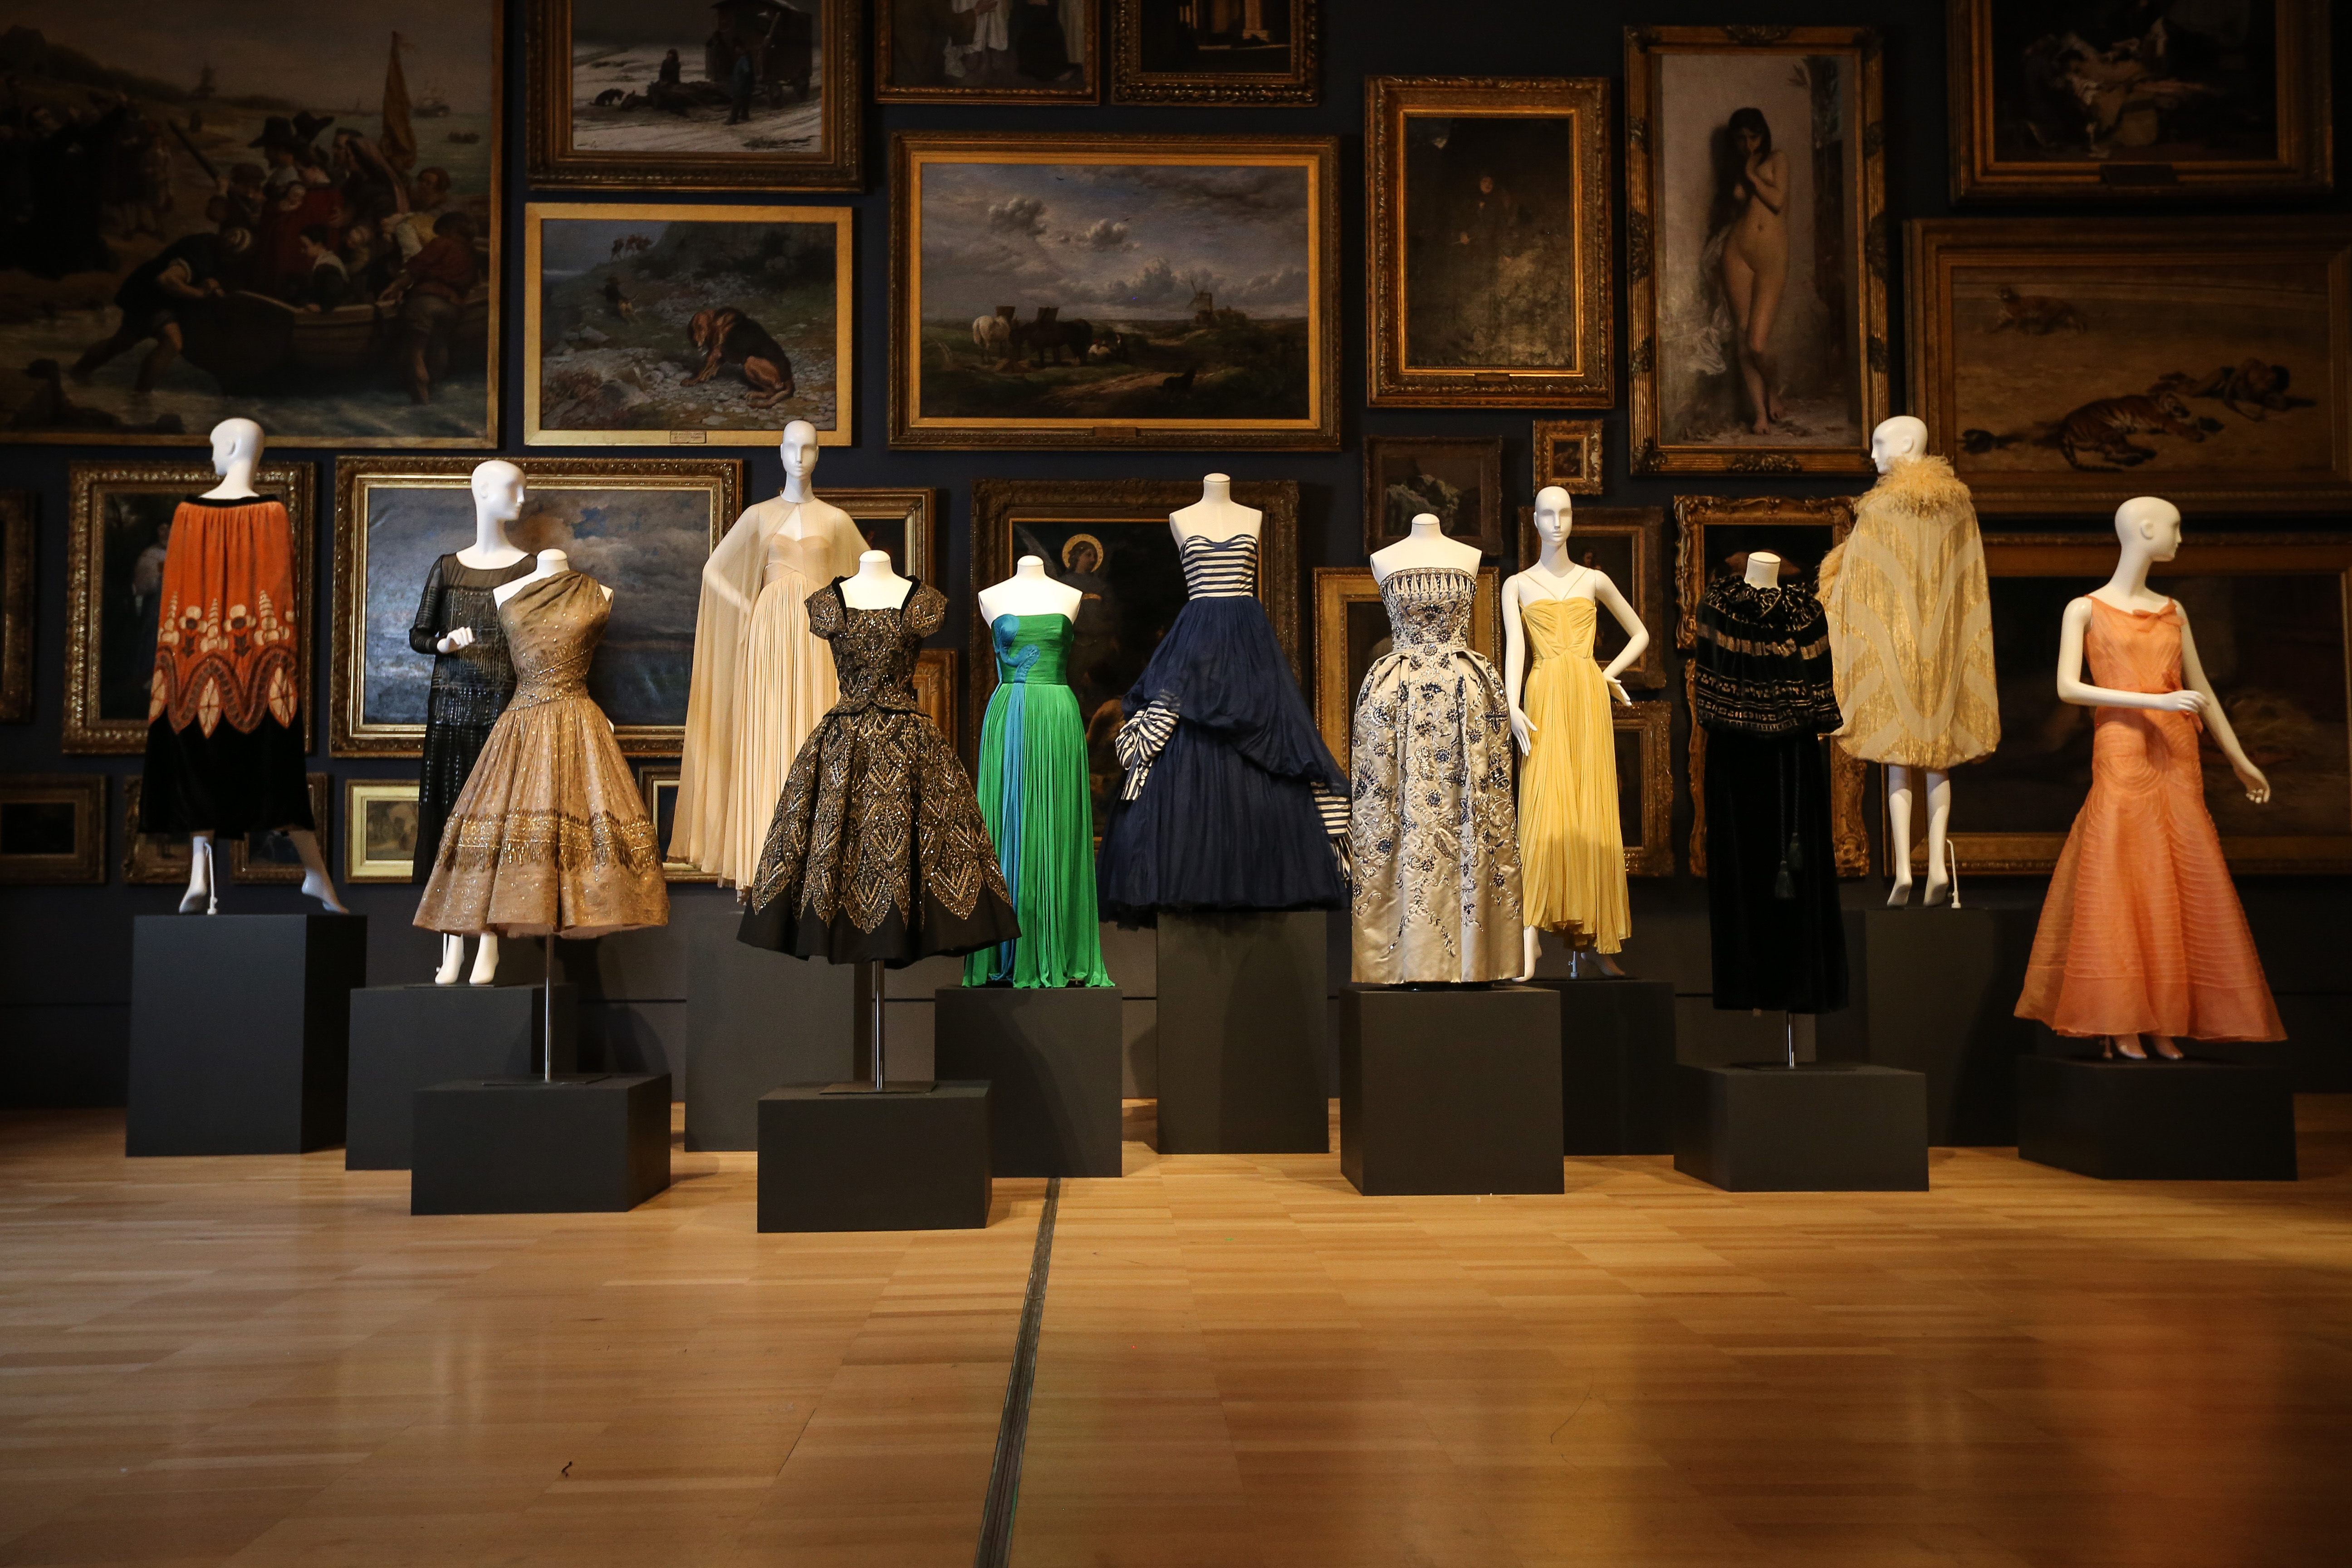 A selection of works from The Dominique Sirop Collection, National Gallery of Victoria, Melbourne, Purchased with funds donated by Mrs Krystyna Campbell-Pretty in memory of Mr Harold Campbell-Pretty, 2015.